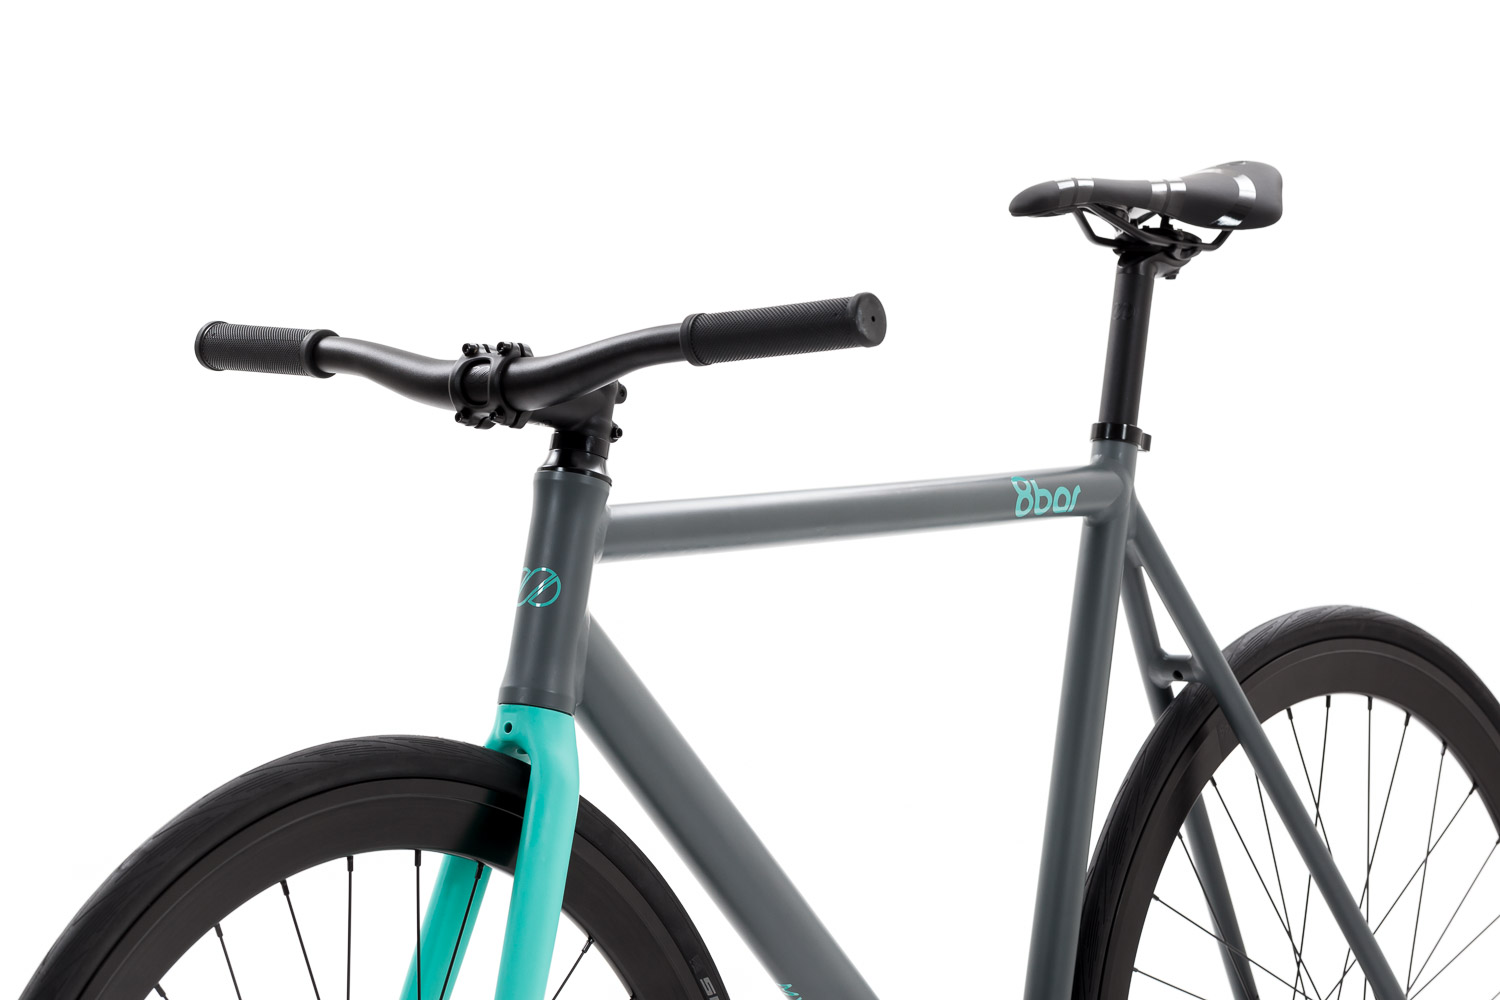 8bar fhain mintgrey bike fixie fixed gear 2 - 8bar FHAIN - sky asphalt - Design Your Frame